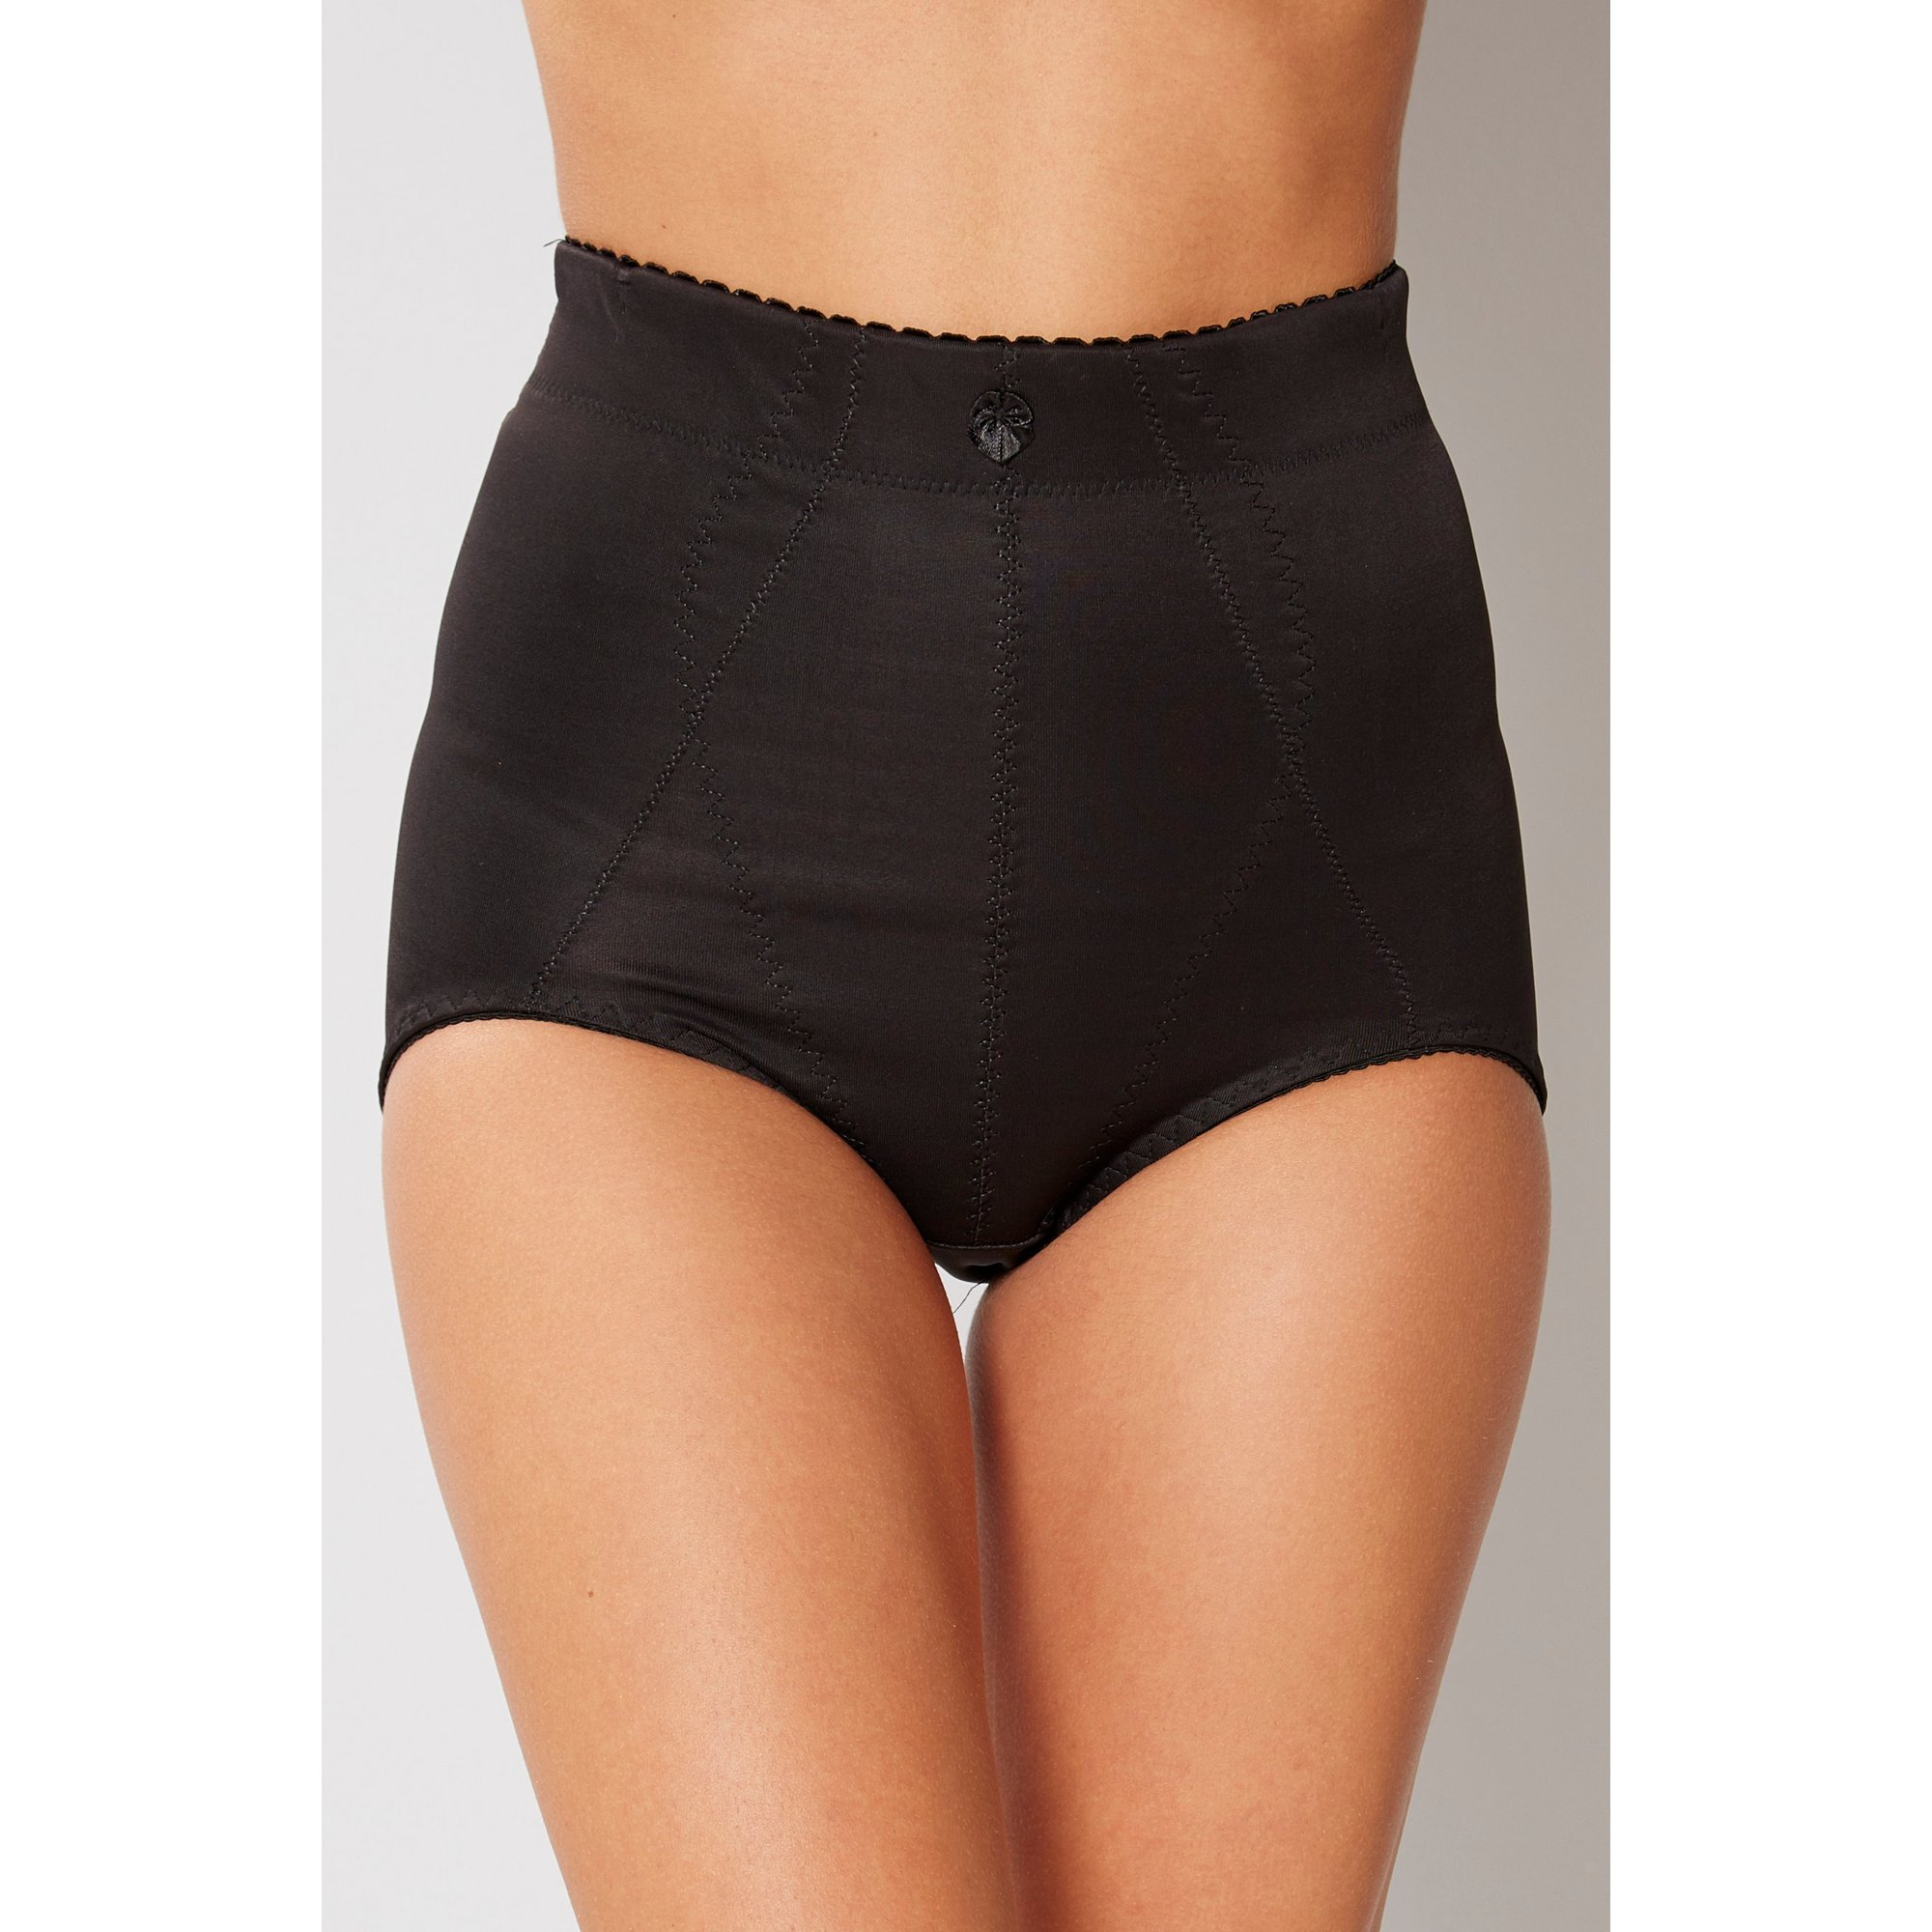 Image of Extra Firm Girdle